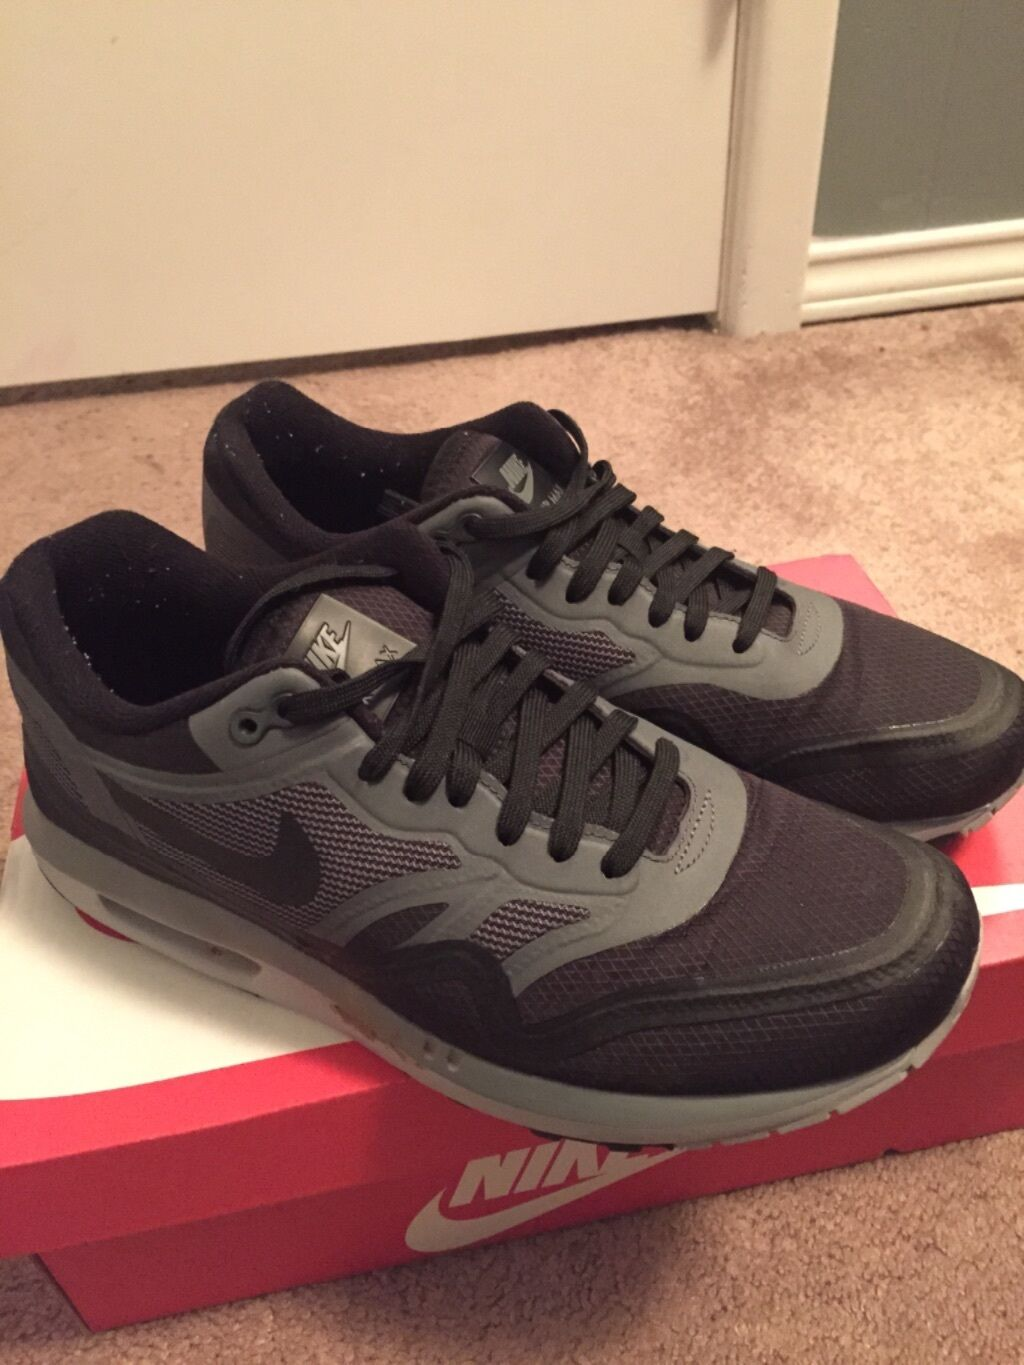 0fd0a96206 Nike air max Lunar 1 size 8.5 wr nodjsc675-new shoes - beach ...